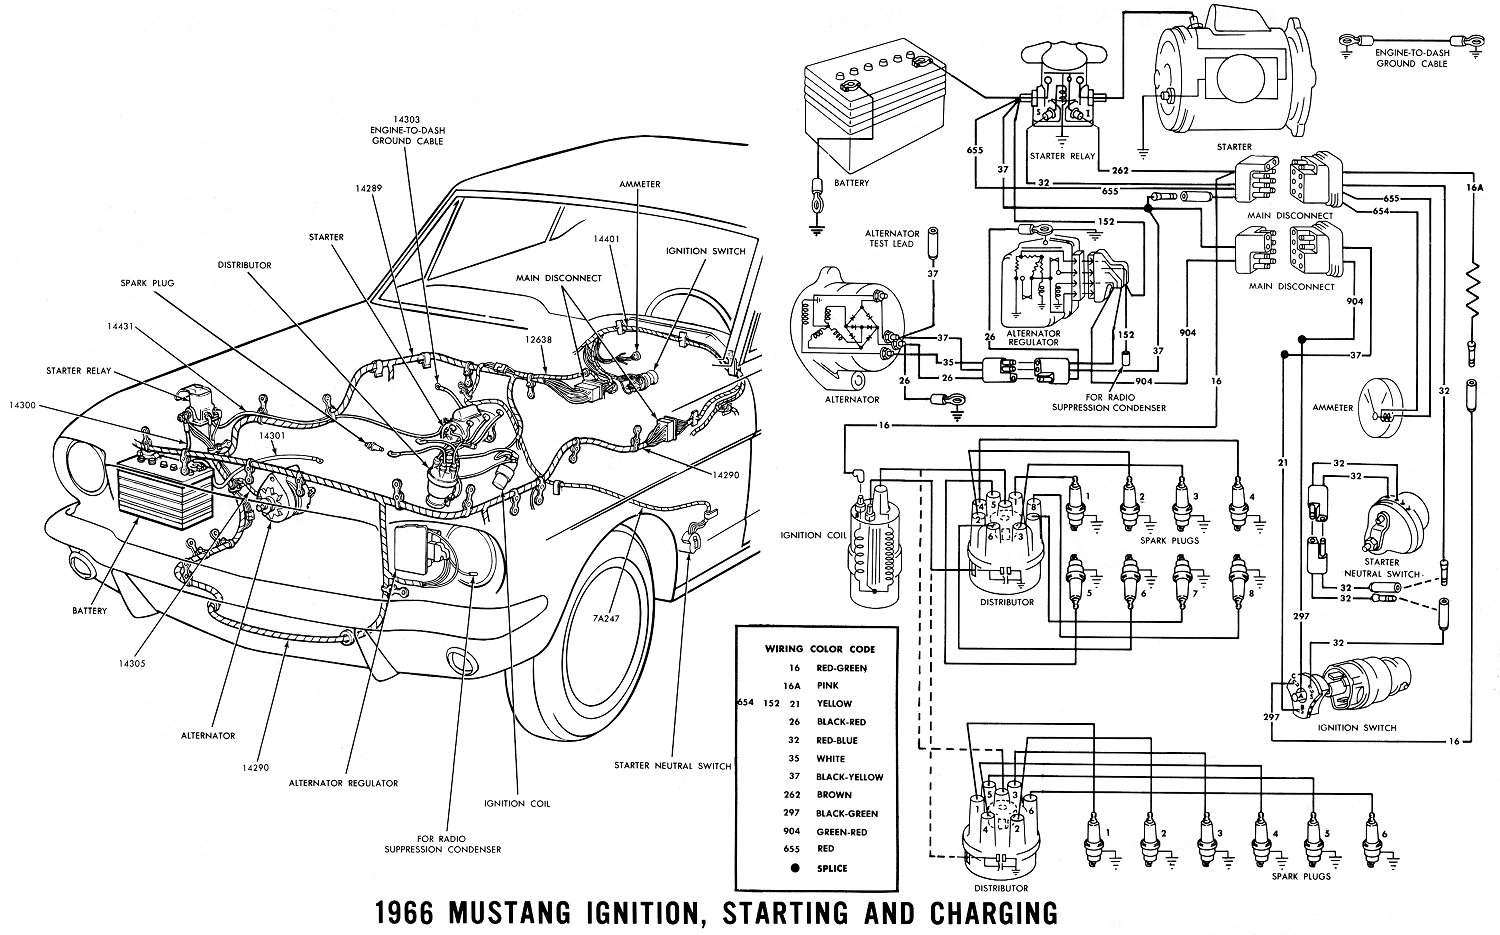 66ignit 1966 mustang wiring diagrams average joe restoration 65 mustang dash wiring diagram at bayanpartner.co